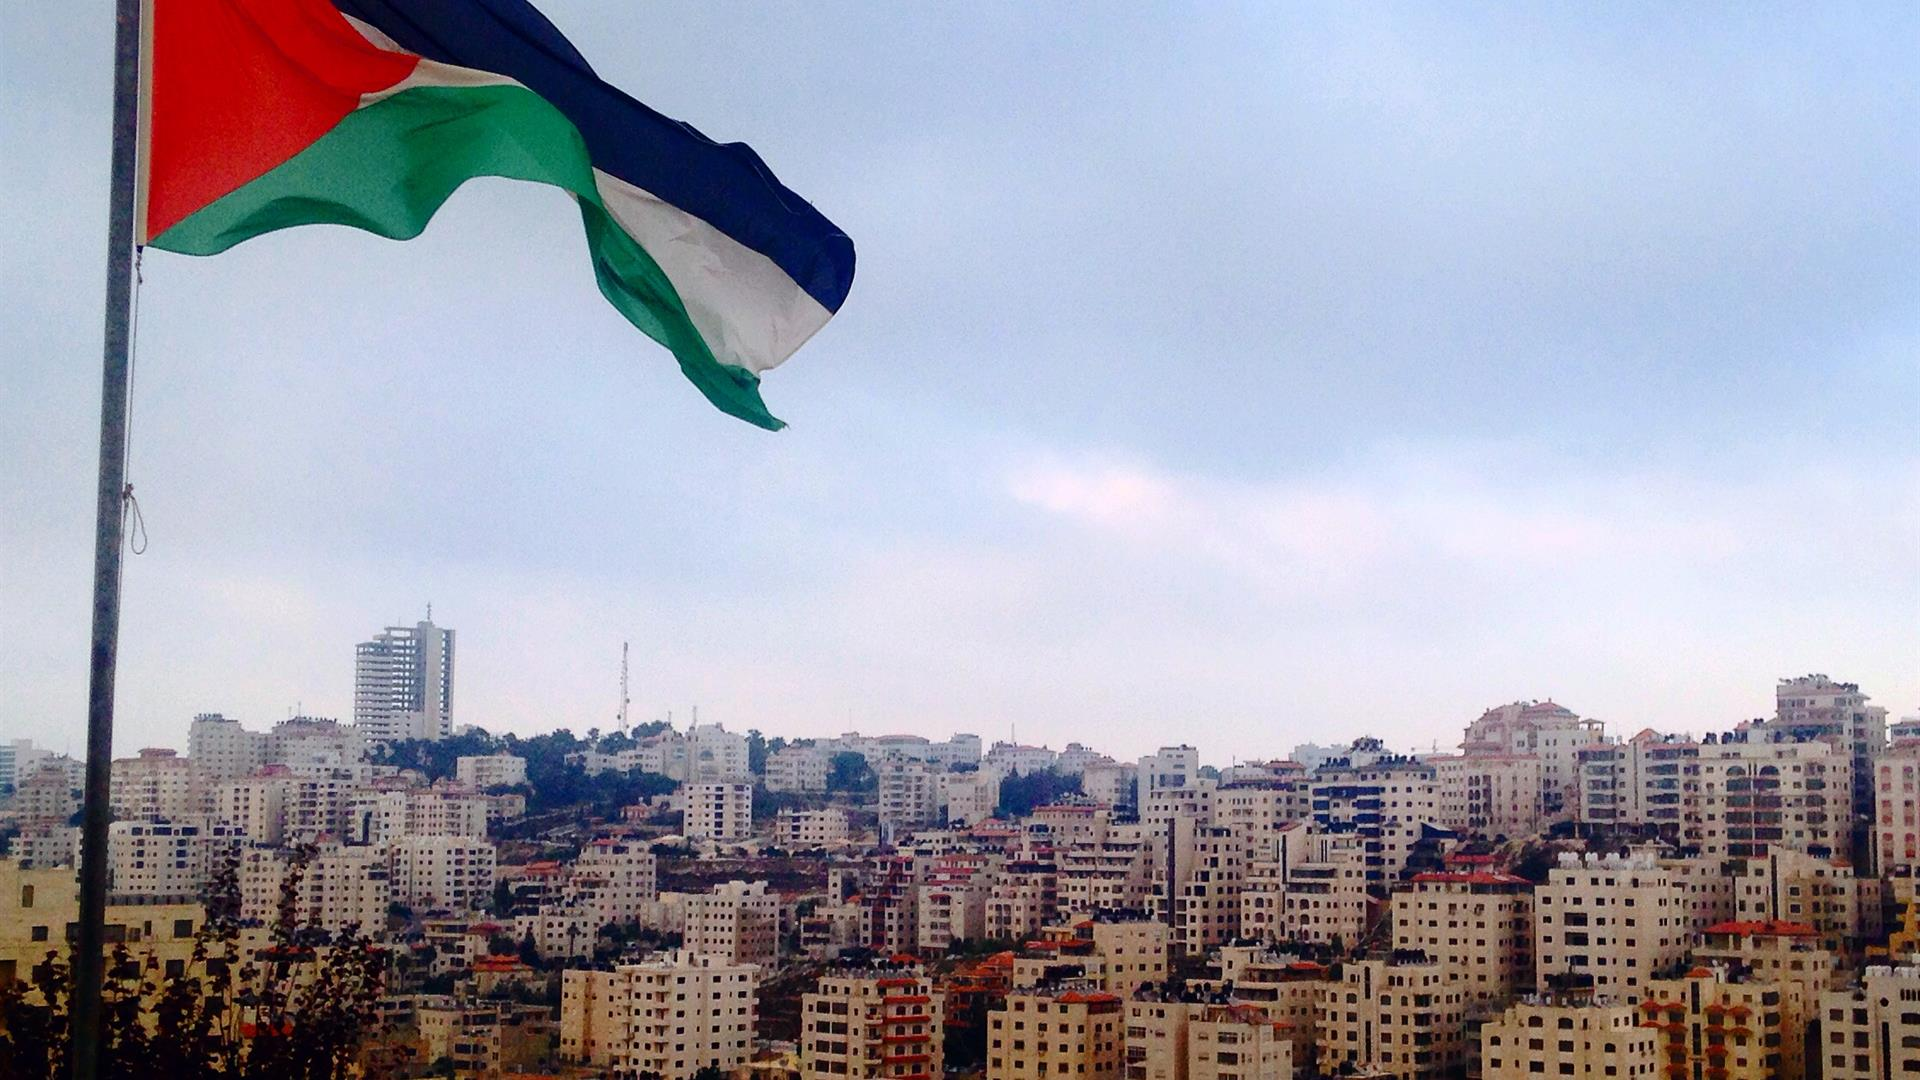 Palestine Flag Fluttering In The Sky Of The City Of Ramallah